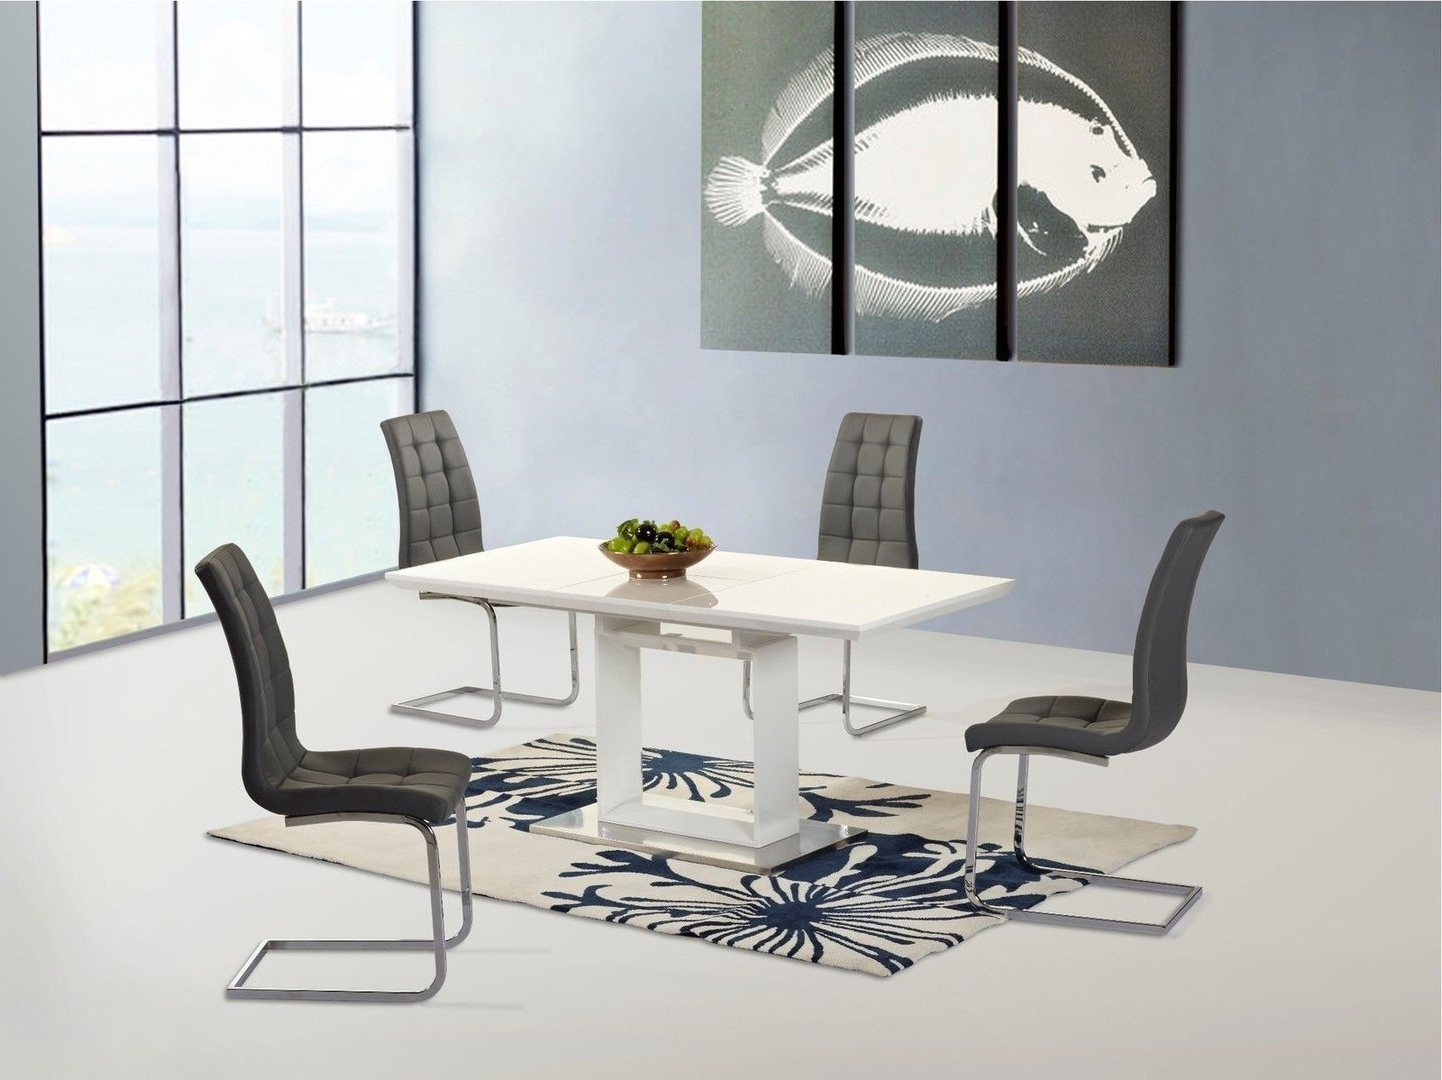 2017 New White High Gloss Extending Dining Table And 6 Grey Chairs regarding Extending White Gloss Dining Tables